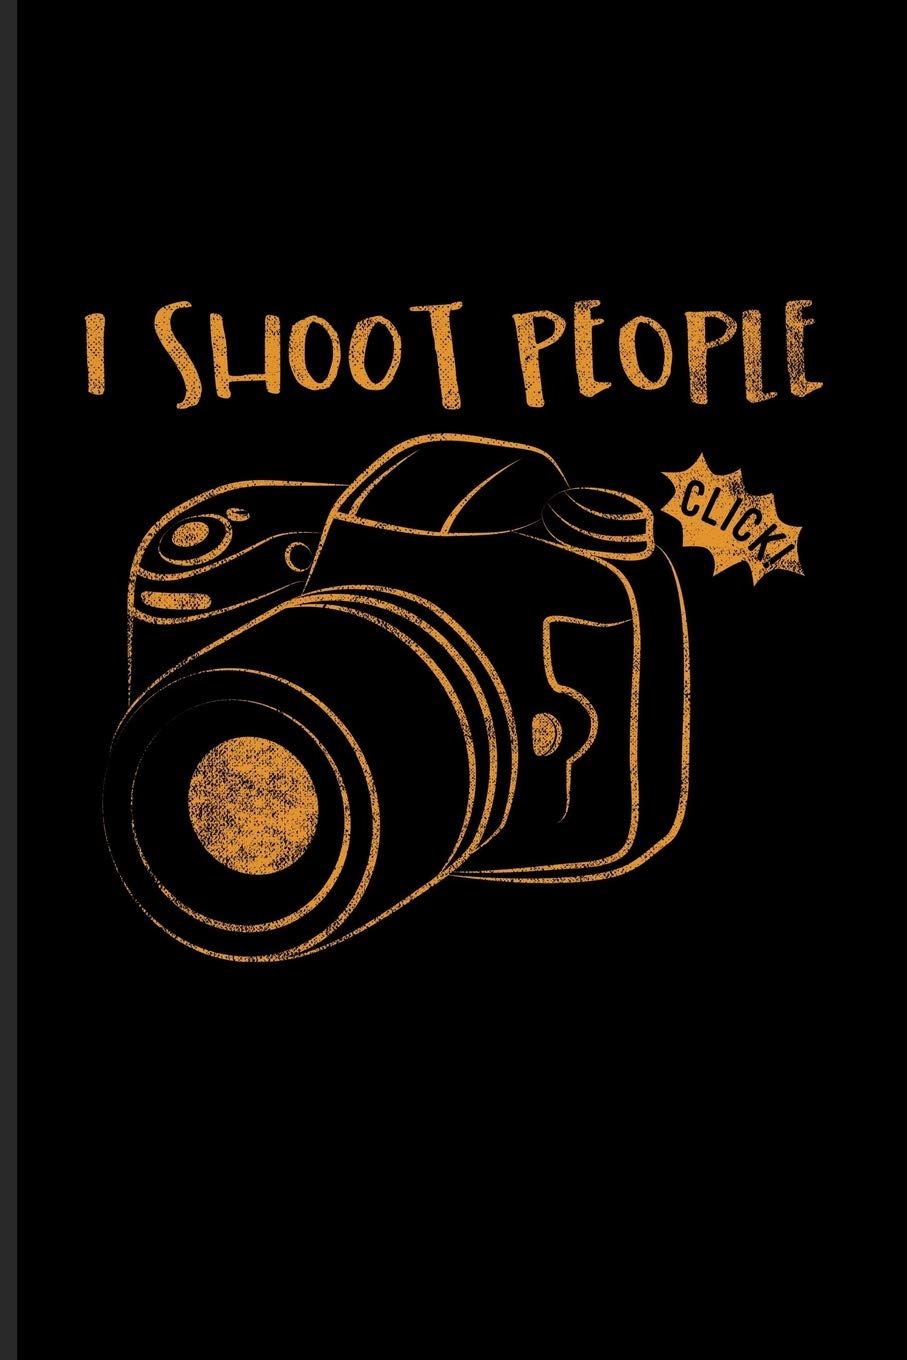 Amazon Com I Shoot People Funny Photographer Quotes Journal For Camera Assistents Photo Artist Portraiture Fiction Focus Taking Pictures Fans 6x9 100 Blank Lined Pages 9781093224238 Photography Yeoys Books